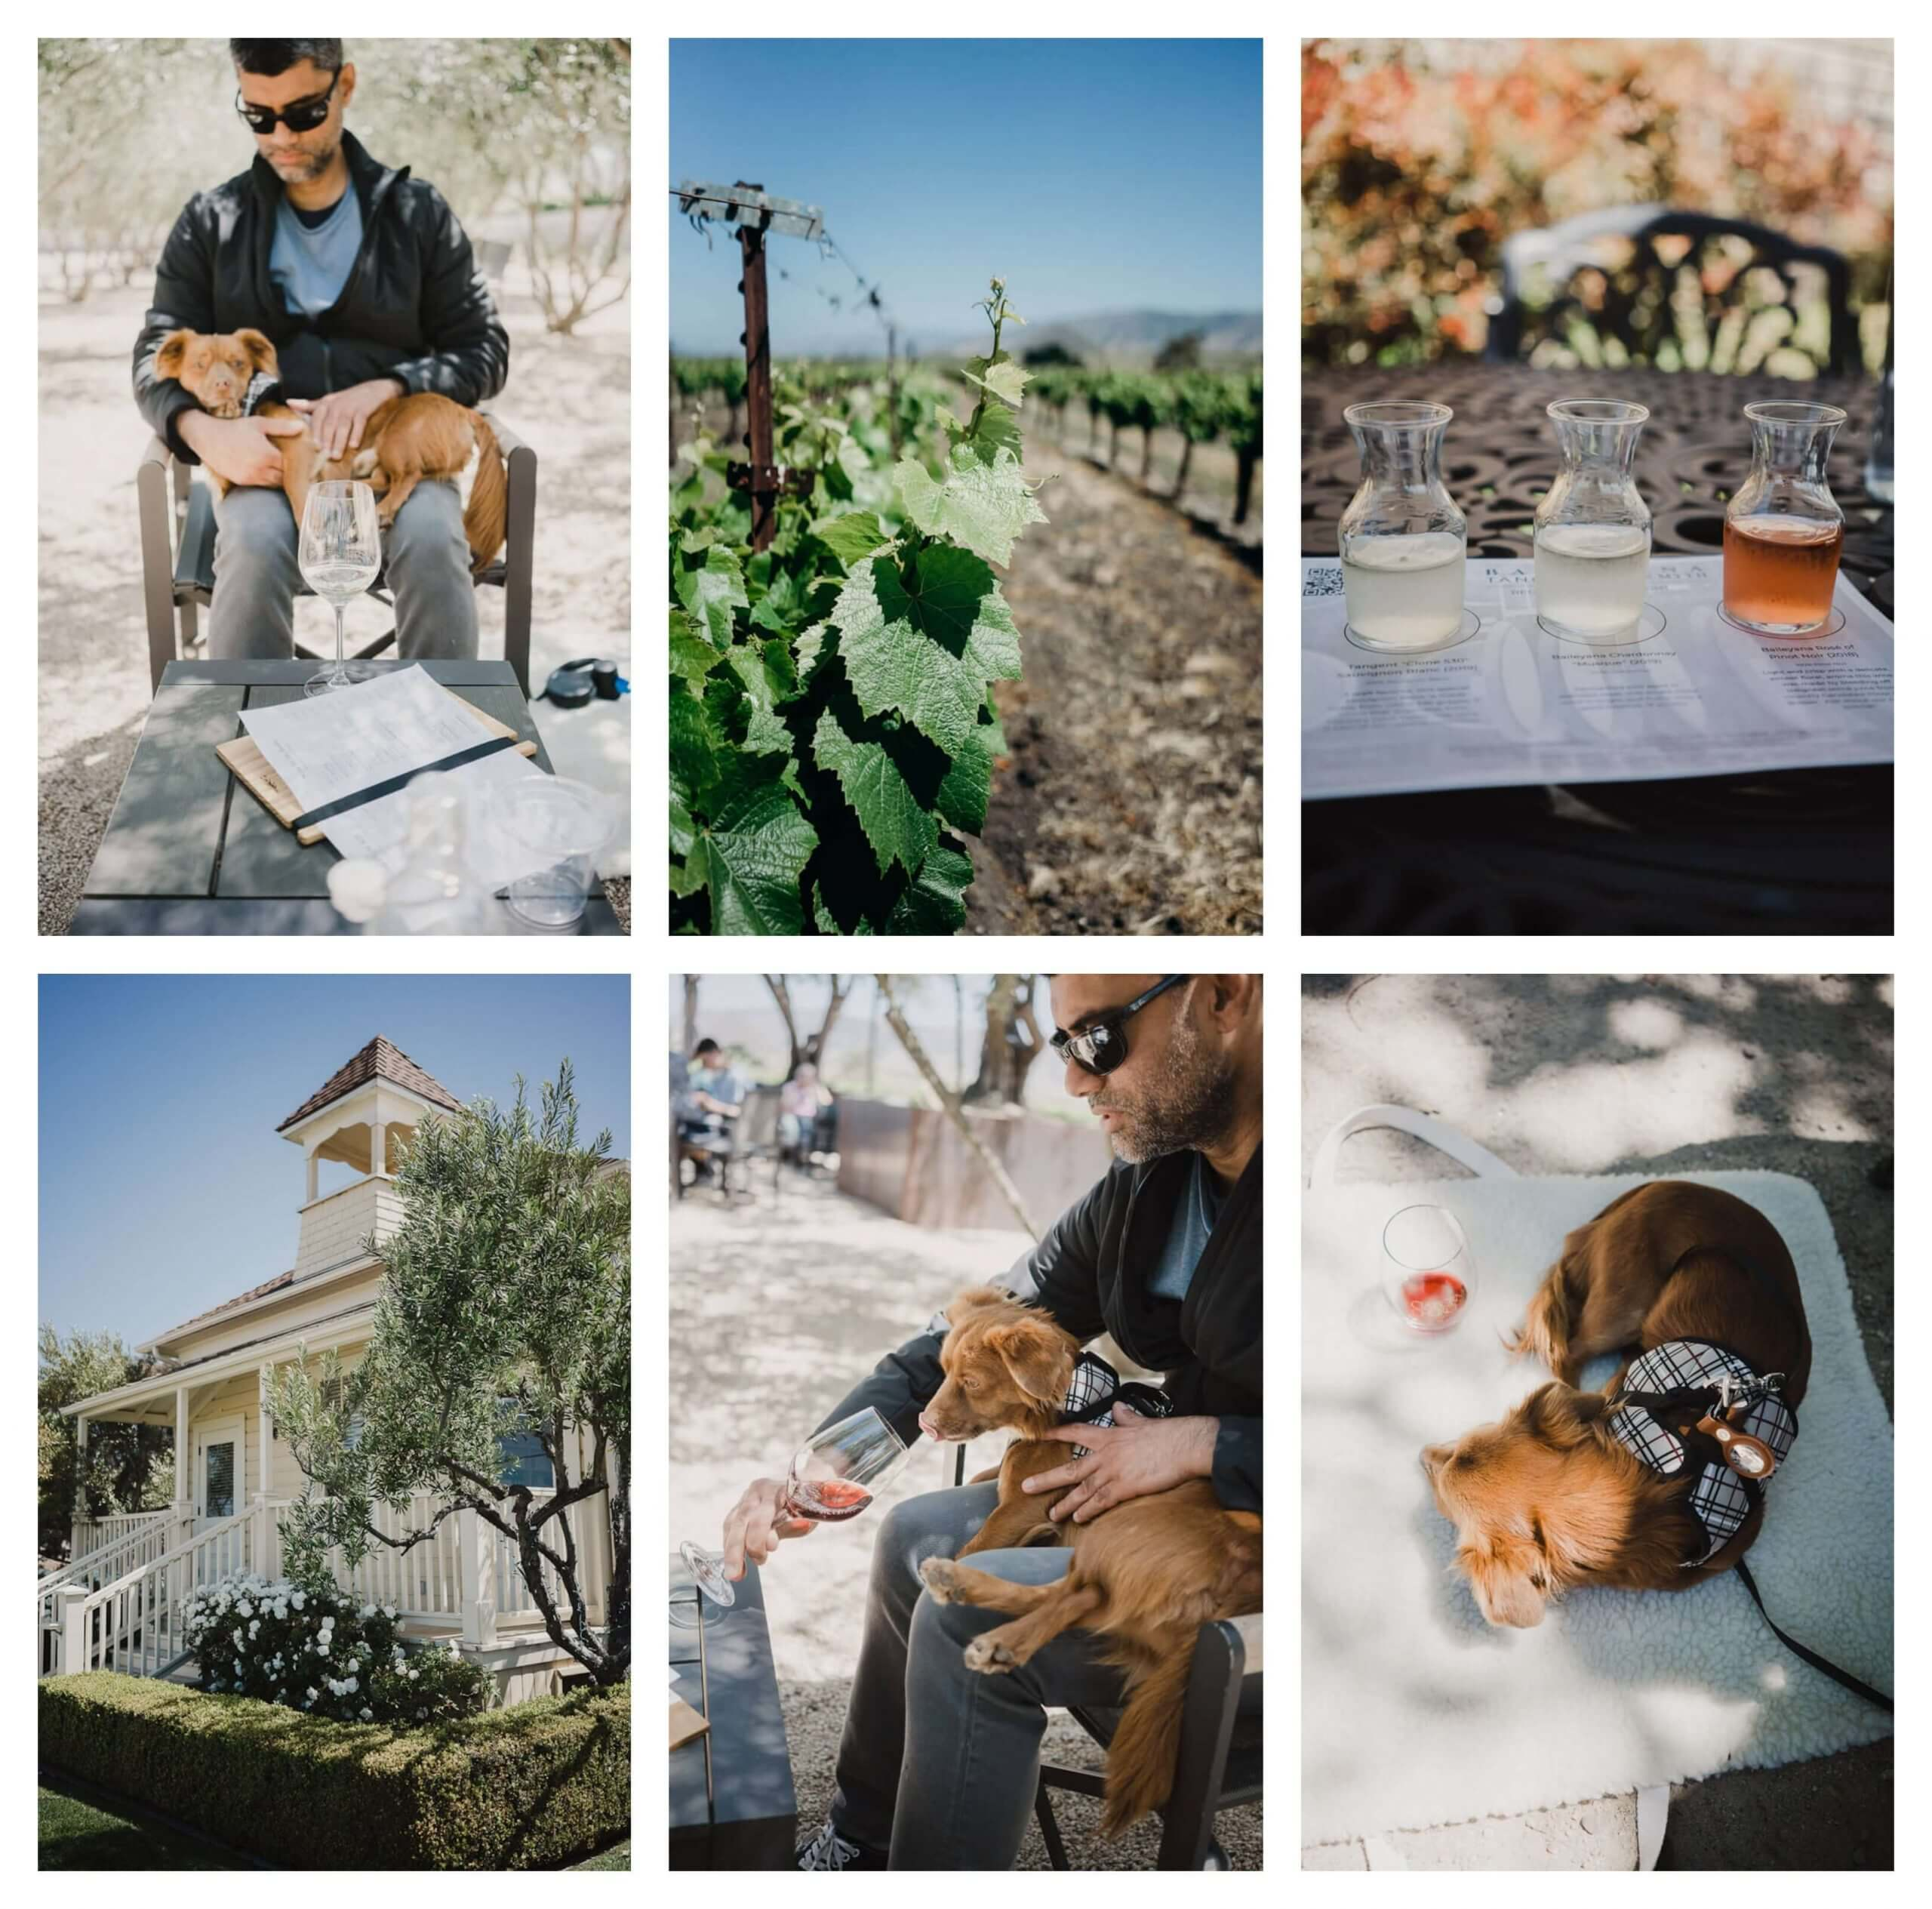 Dog friendly wine tasting and wineries at Edna Valley and San Luis Obispo